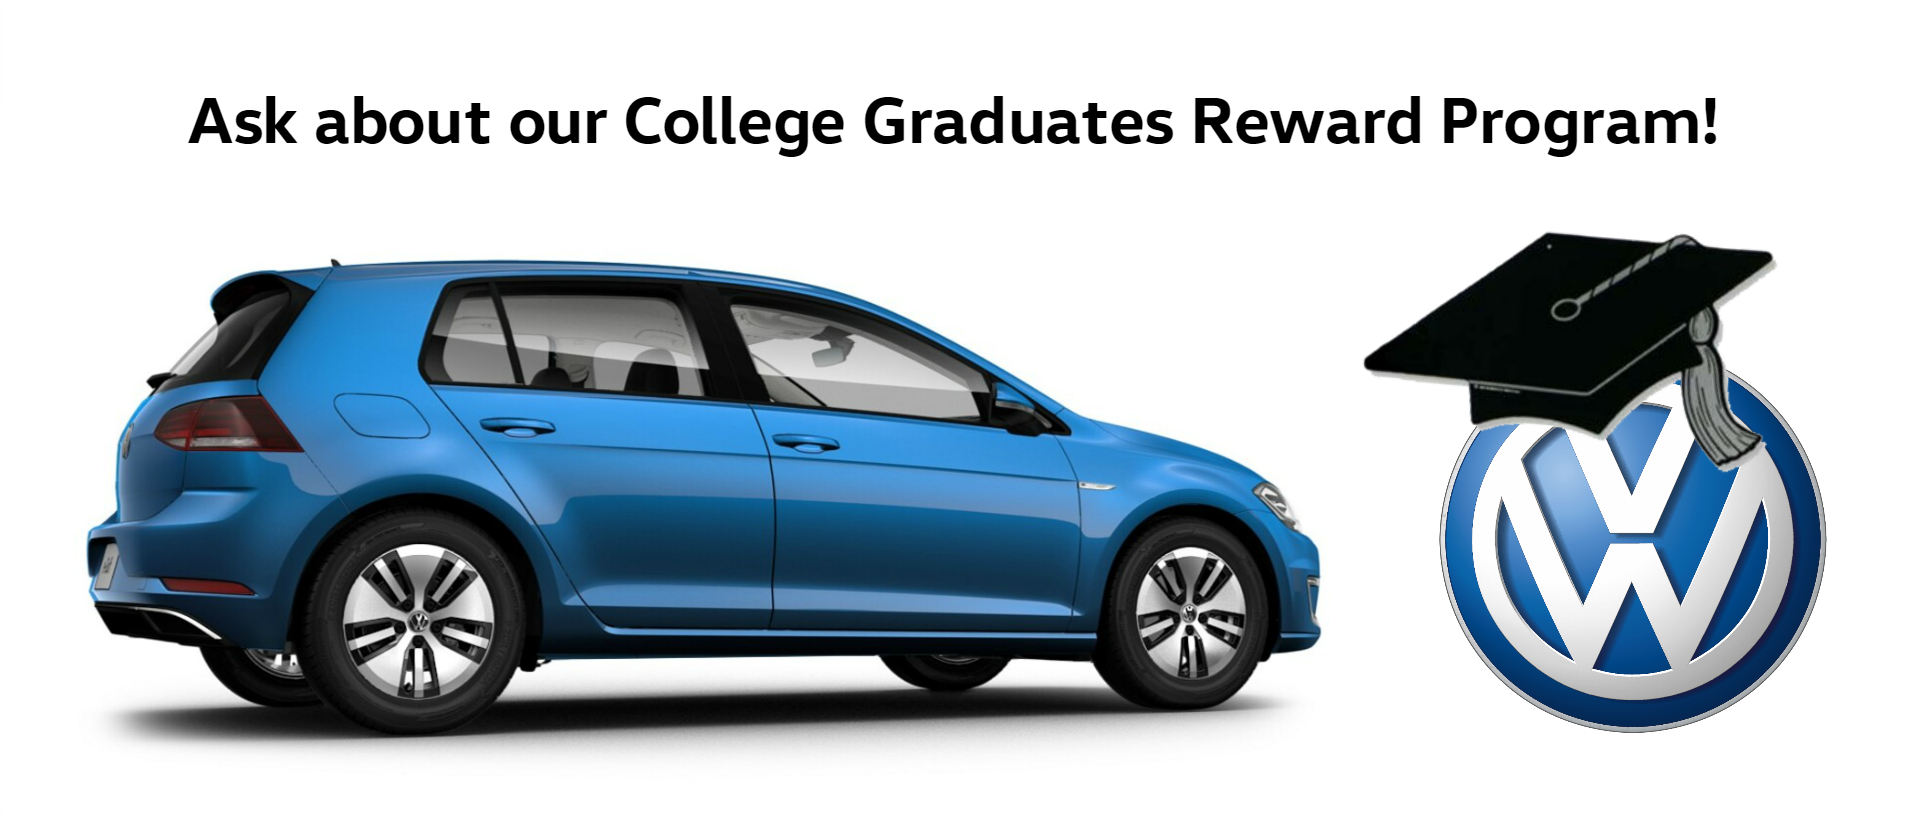 VW College Grad Rewards